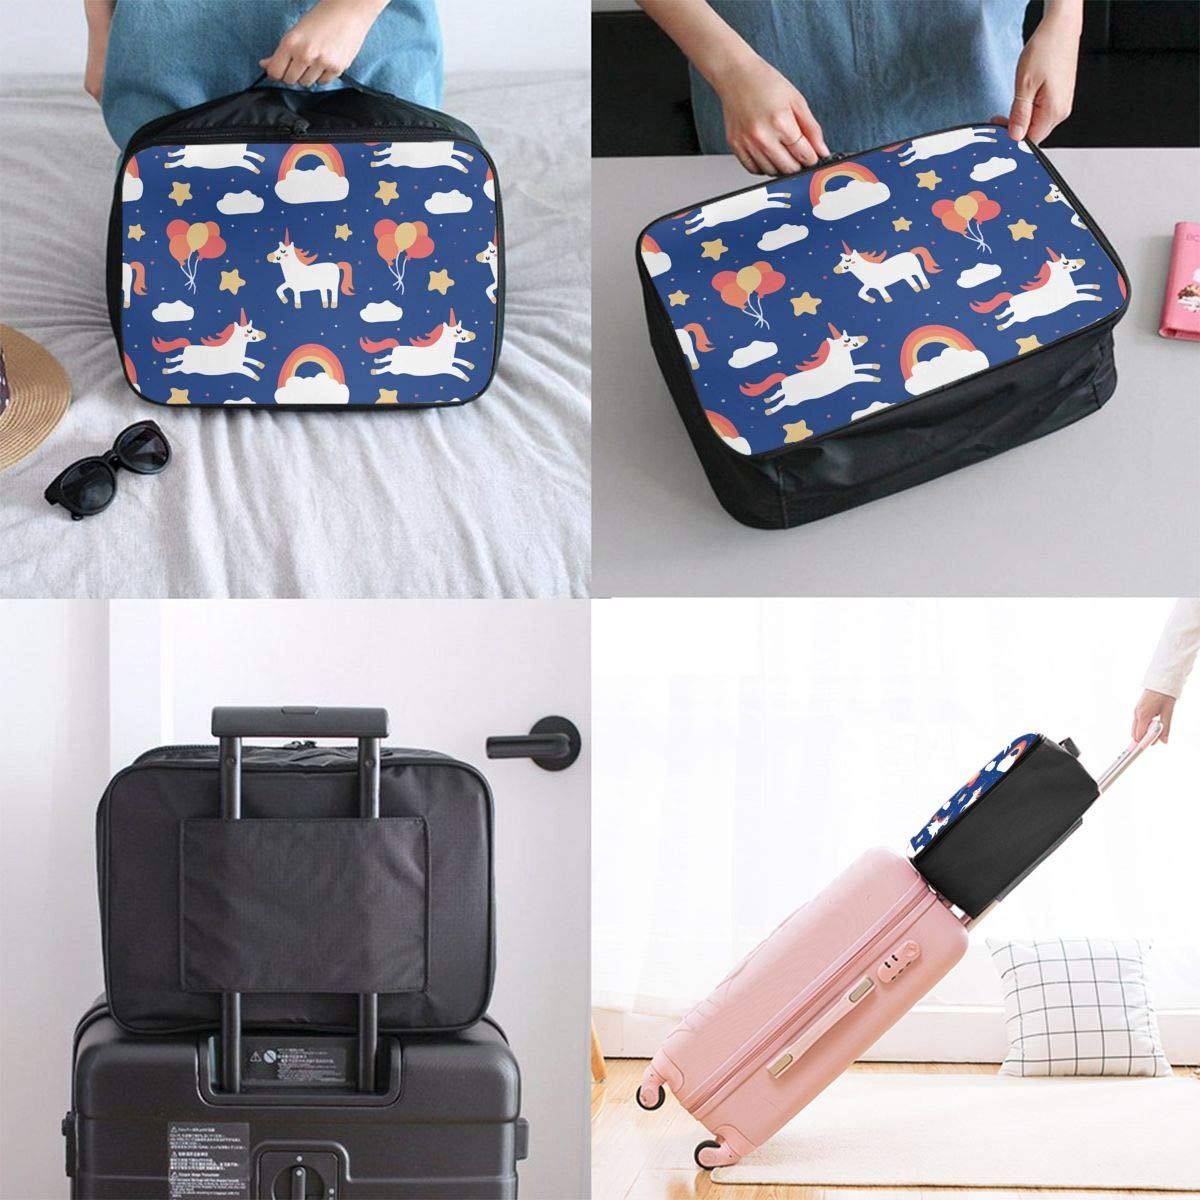 Tote Luggage Bag Sports Holiday Overnight Carry On Bag Time To Be A Unicorn Travel Duffle Bag In Trolley Handle Lightweight Weekender Bag Nylon Luggage Duffel Bag